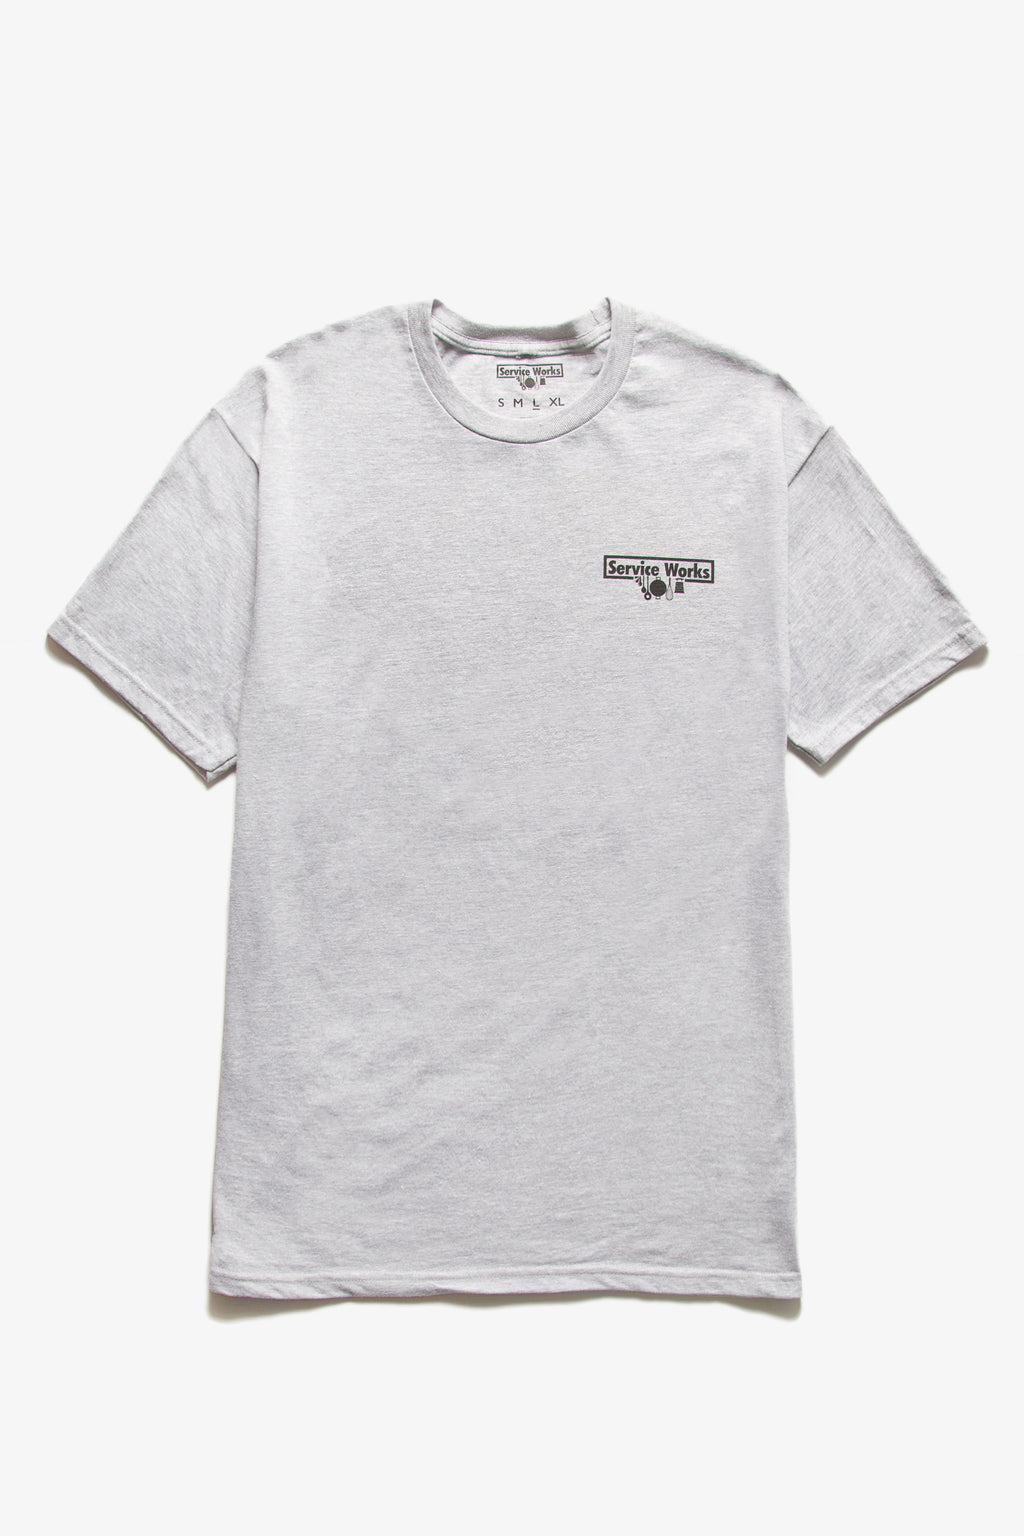 Service Works - Trademark Tee - Heather Grey